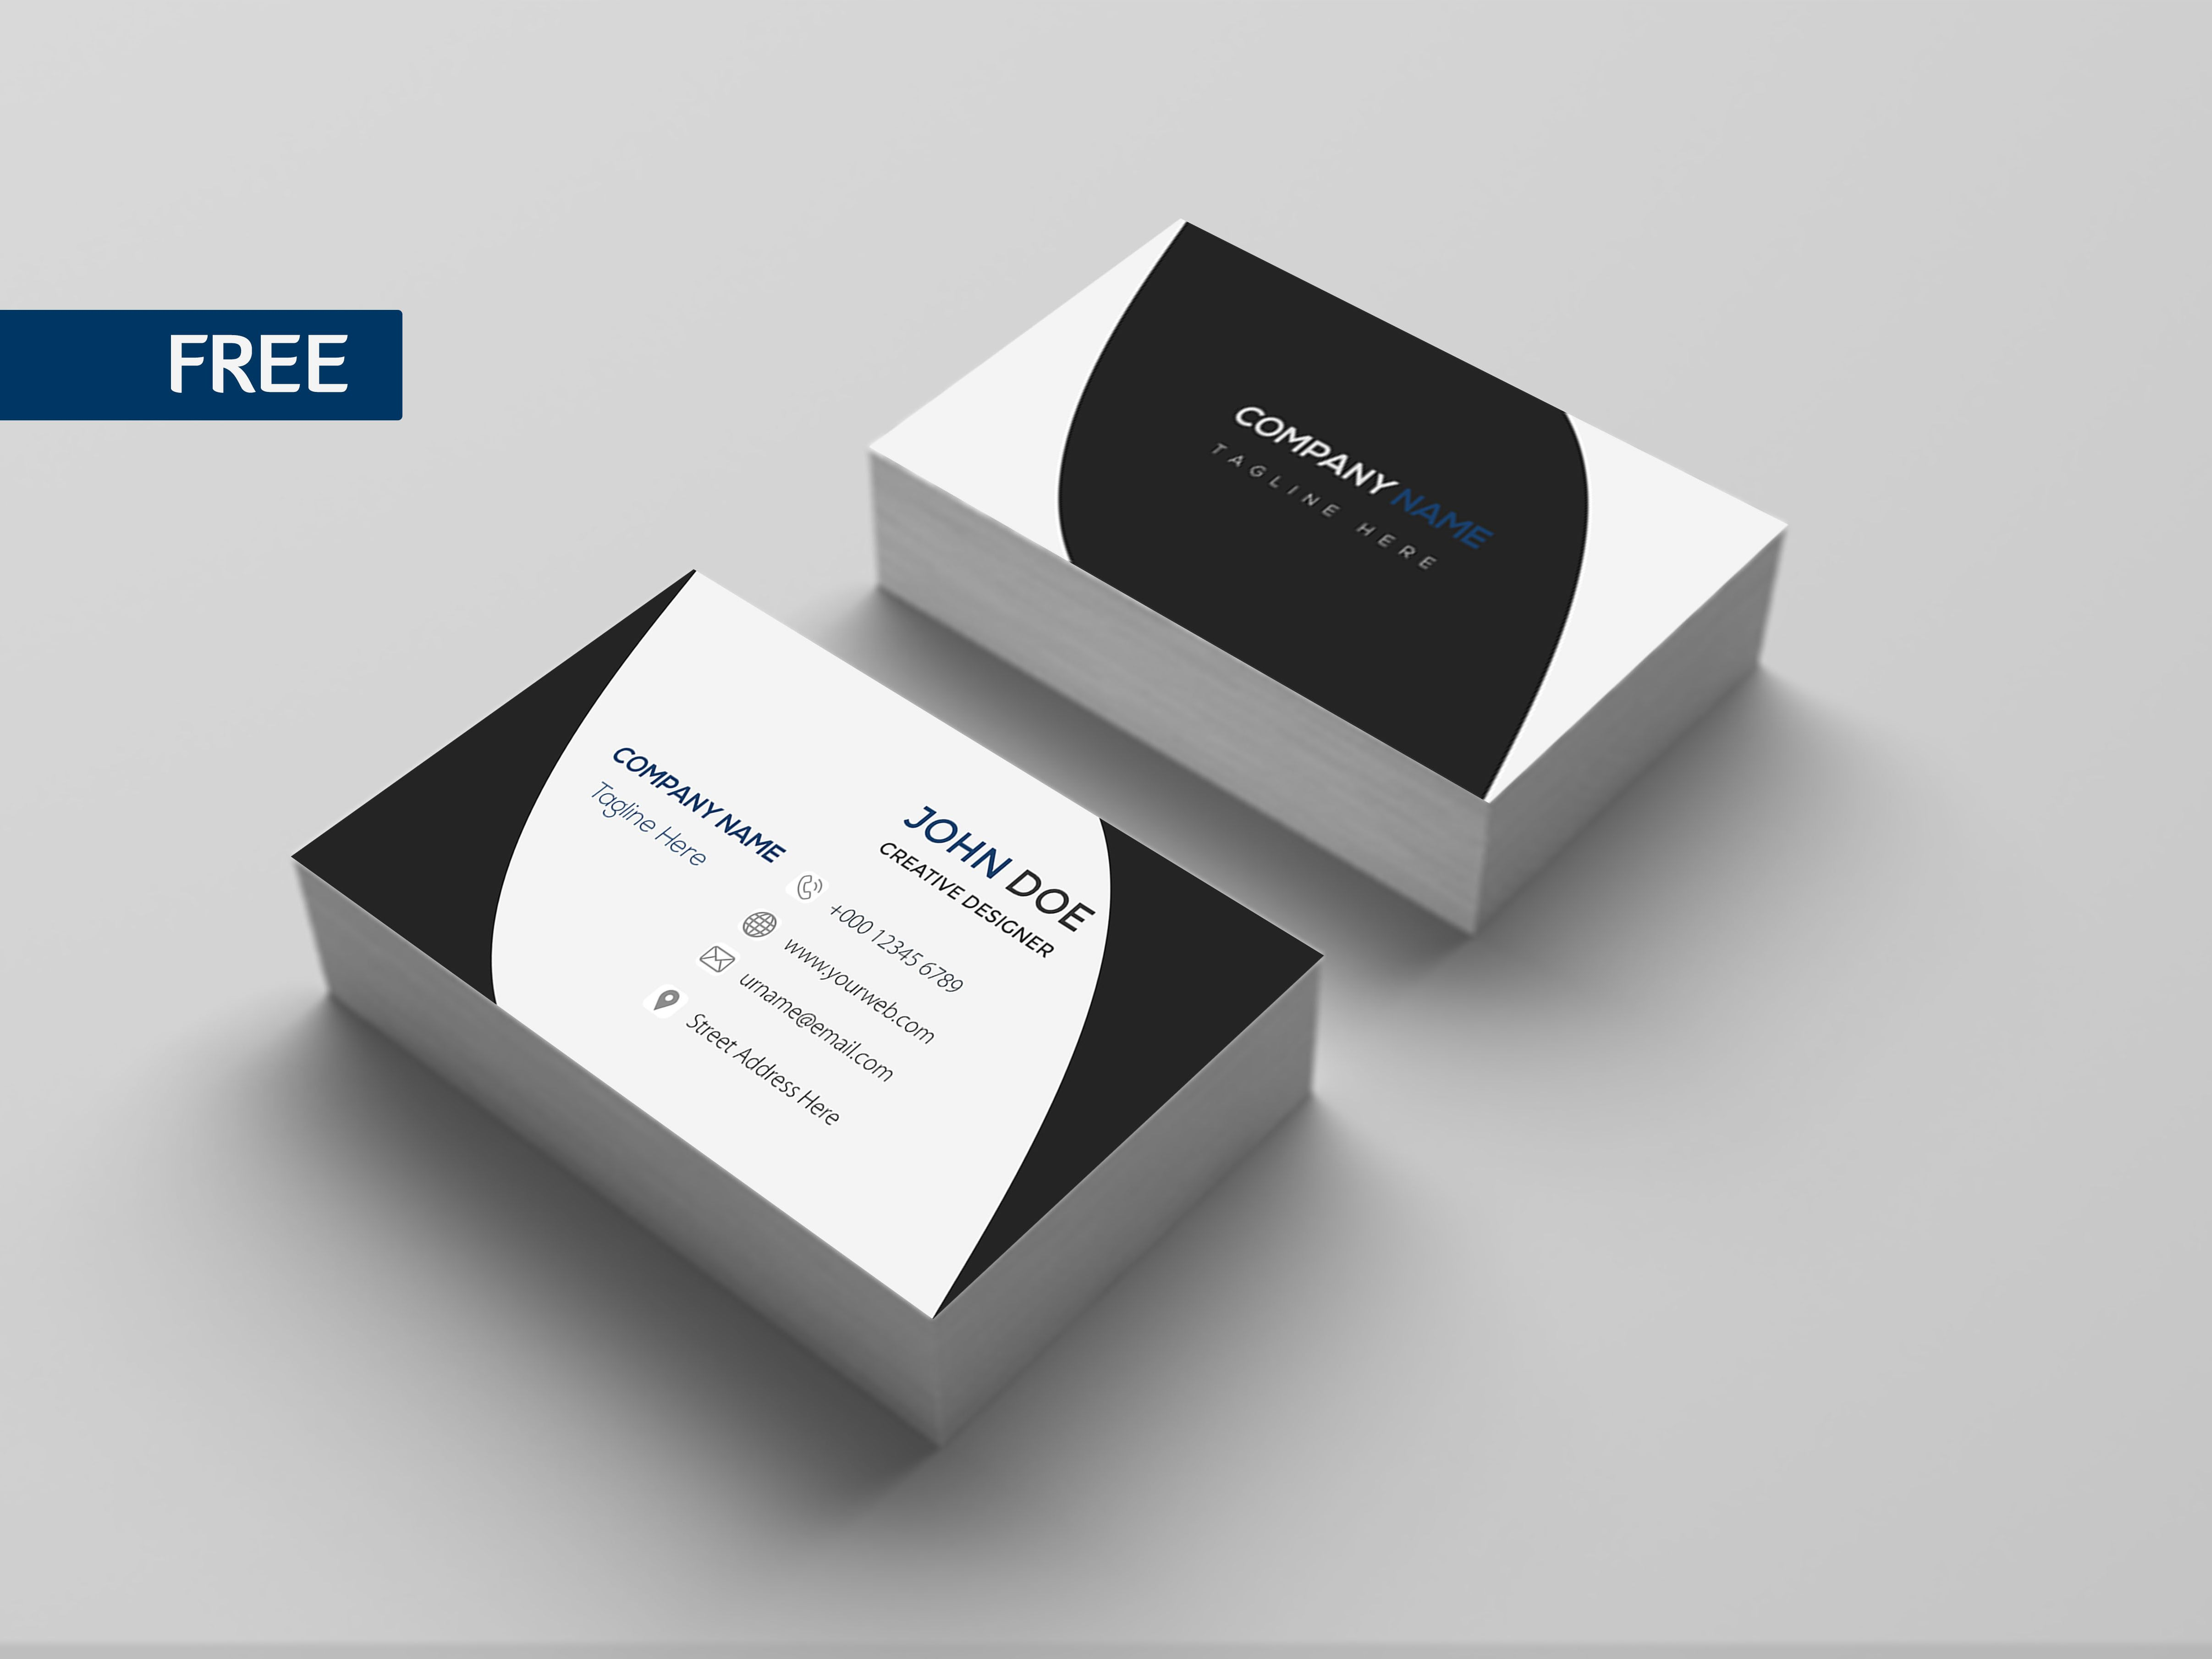 Free Business Card Template 05 Free Business Card Templates Business Card Design Free Business Cards